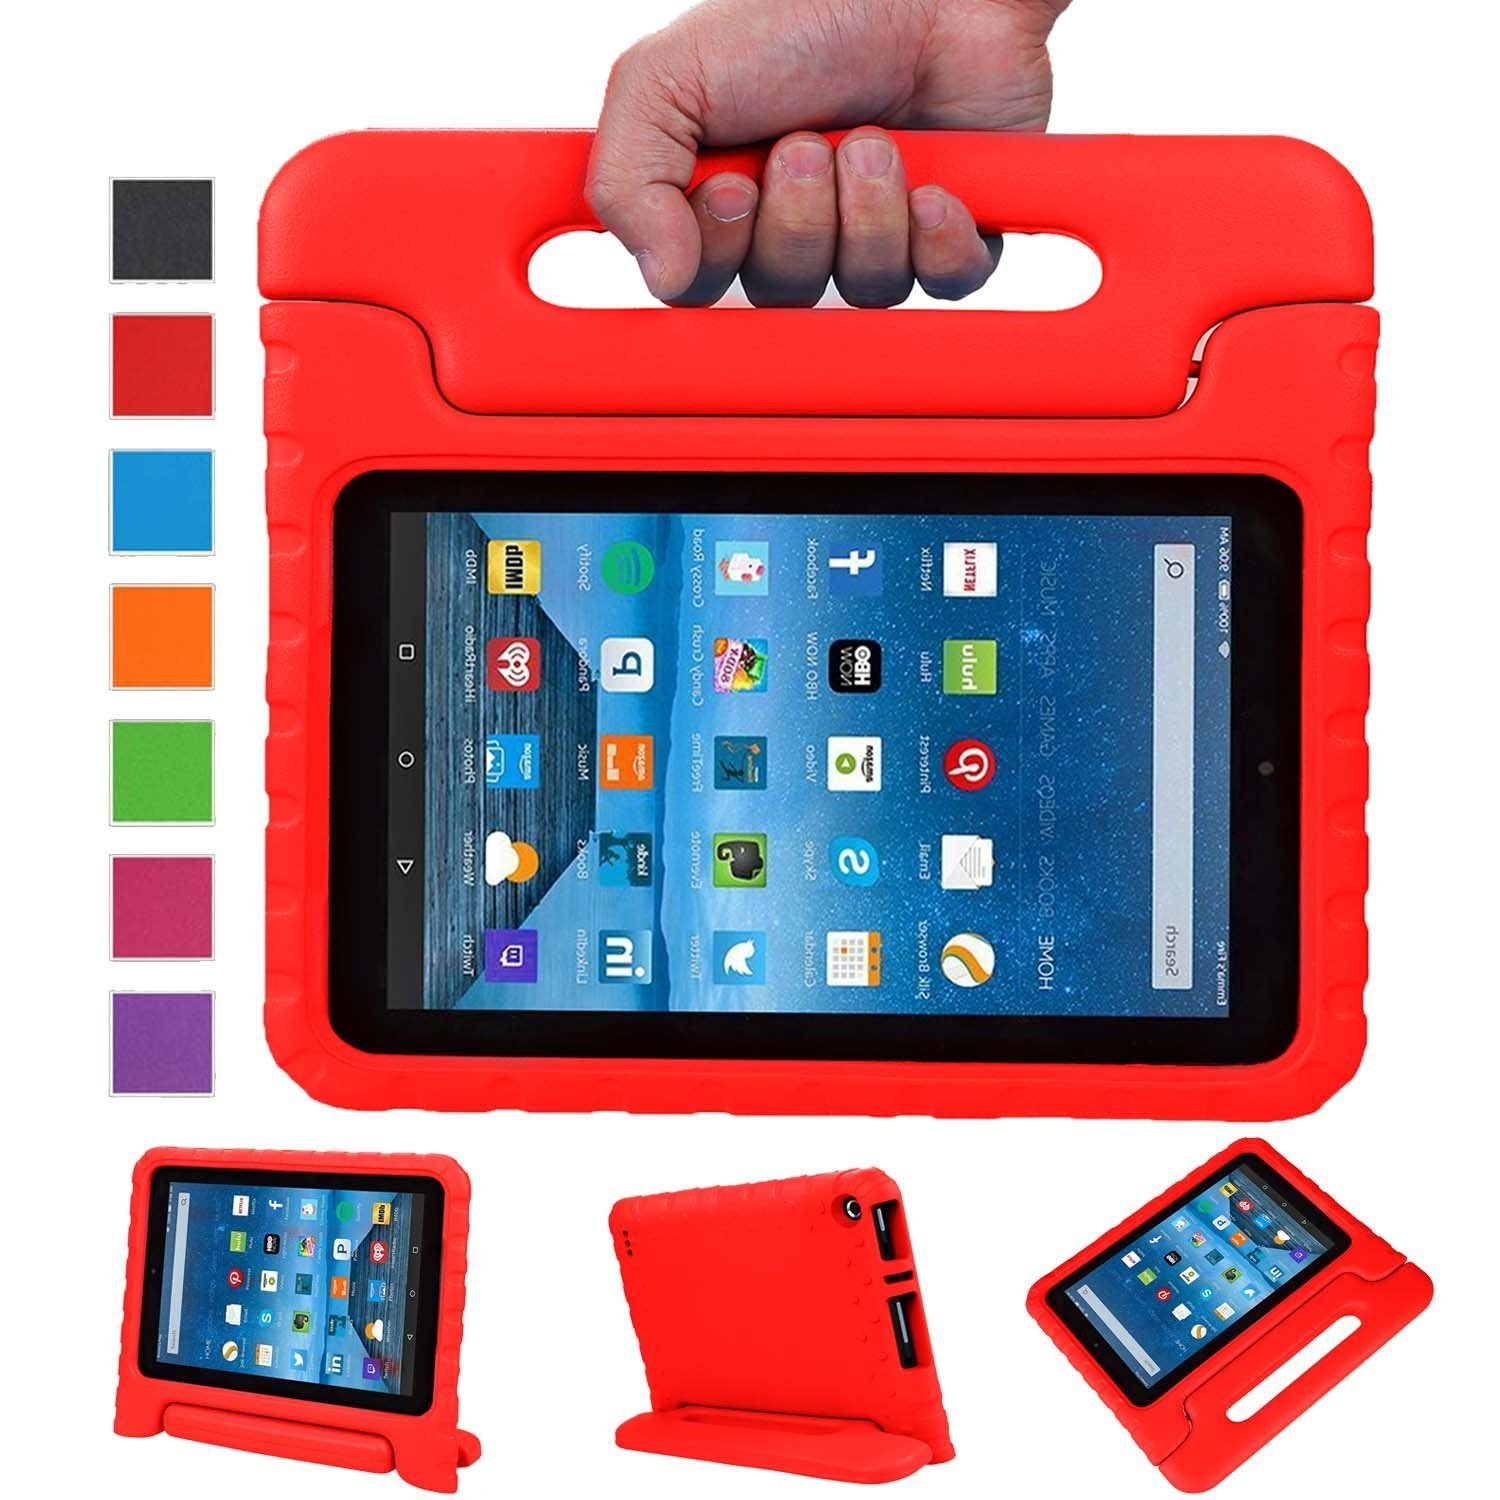 Fire 7 2015 Case, Fire 7 2017 Case, Grand Sky Super Light Weight Shock Proof Handle Protective Stand Kids Case for Fire 7 inch Display Tablet (5th Gen-2015 Release & 7th Gen-2017 Release) (Grass)